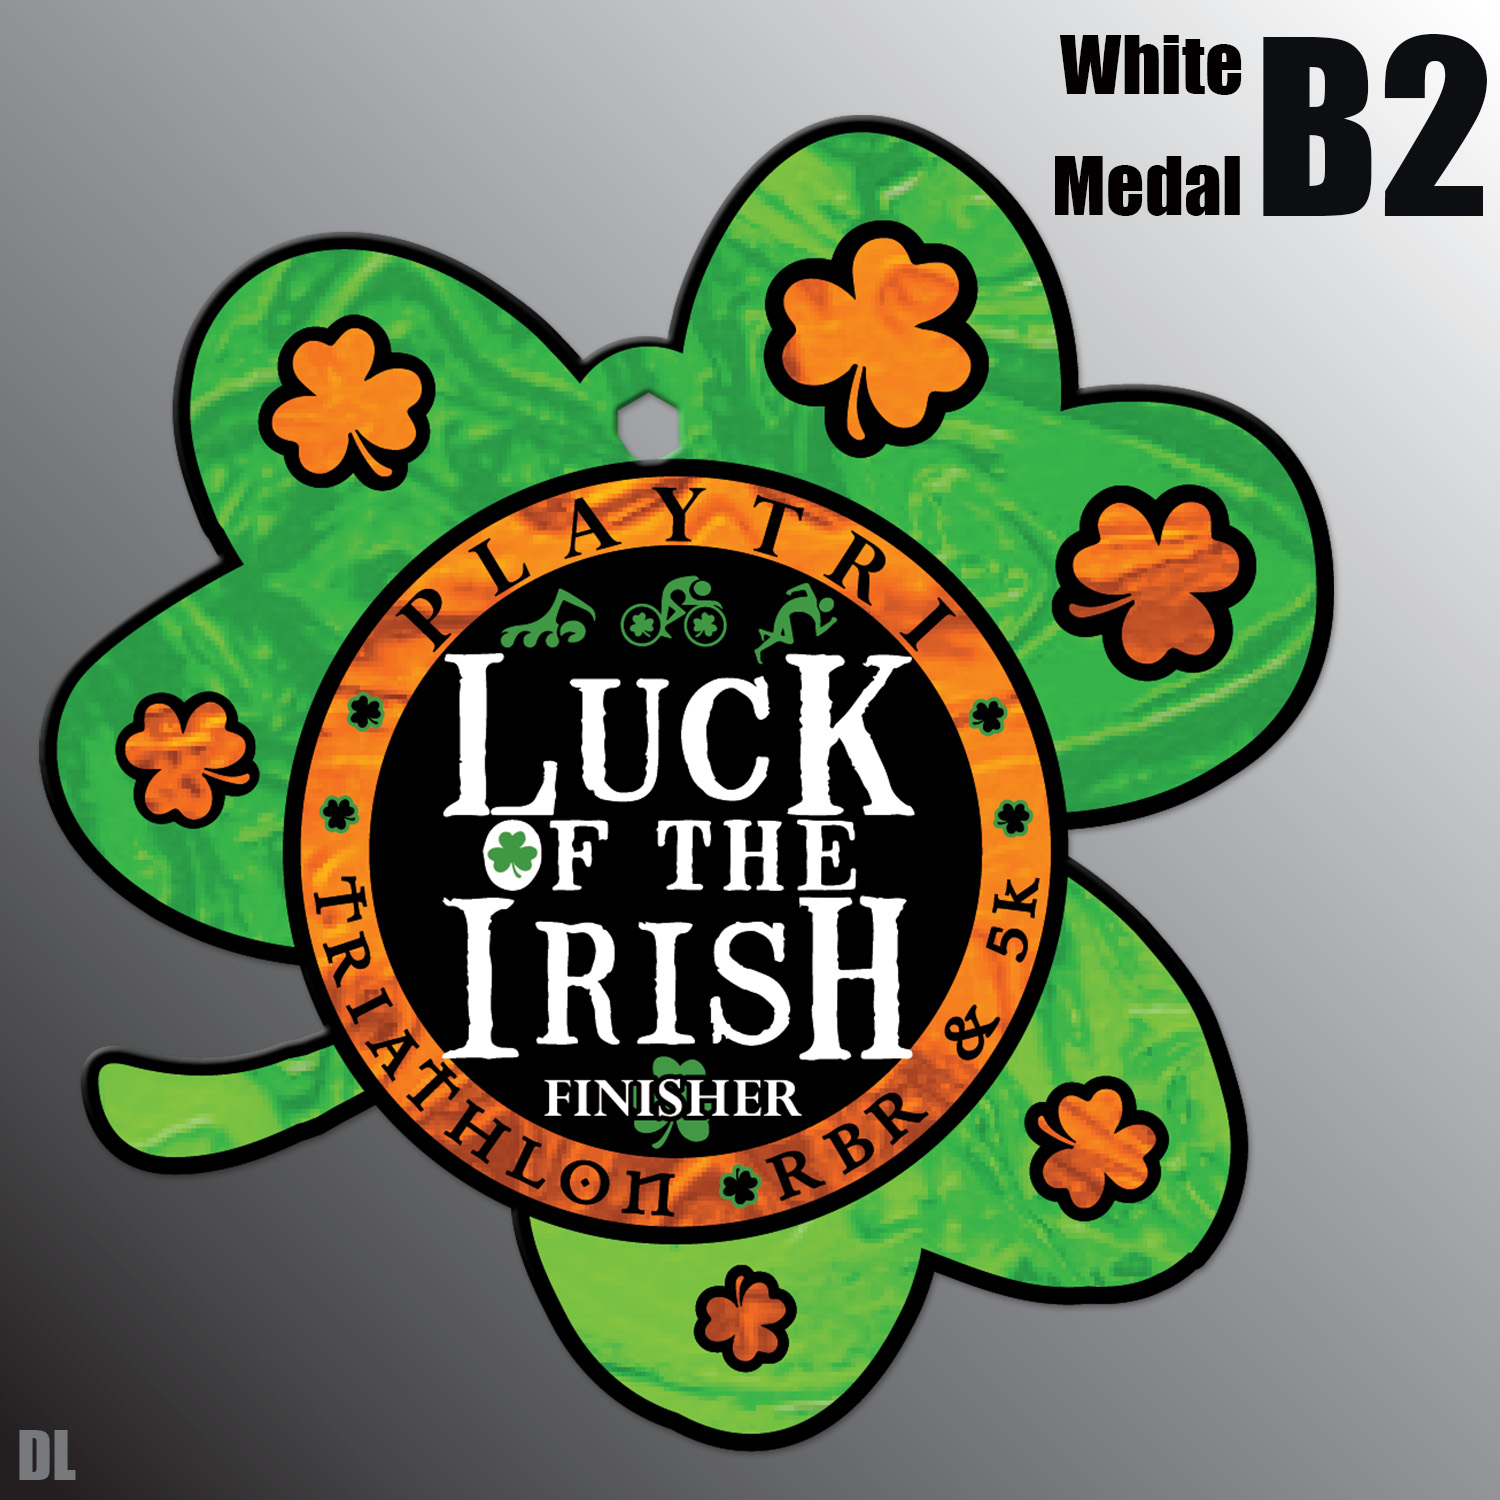 Luck of the Irish Medal